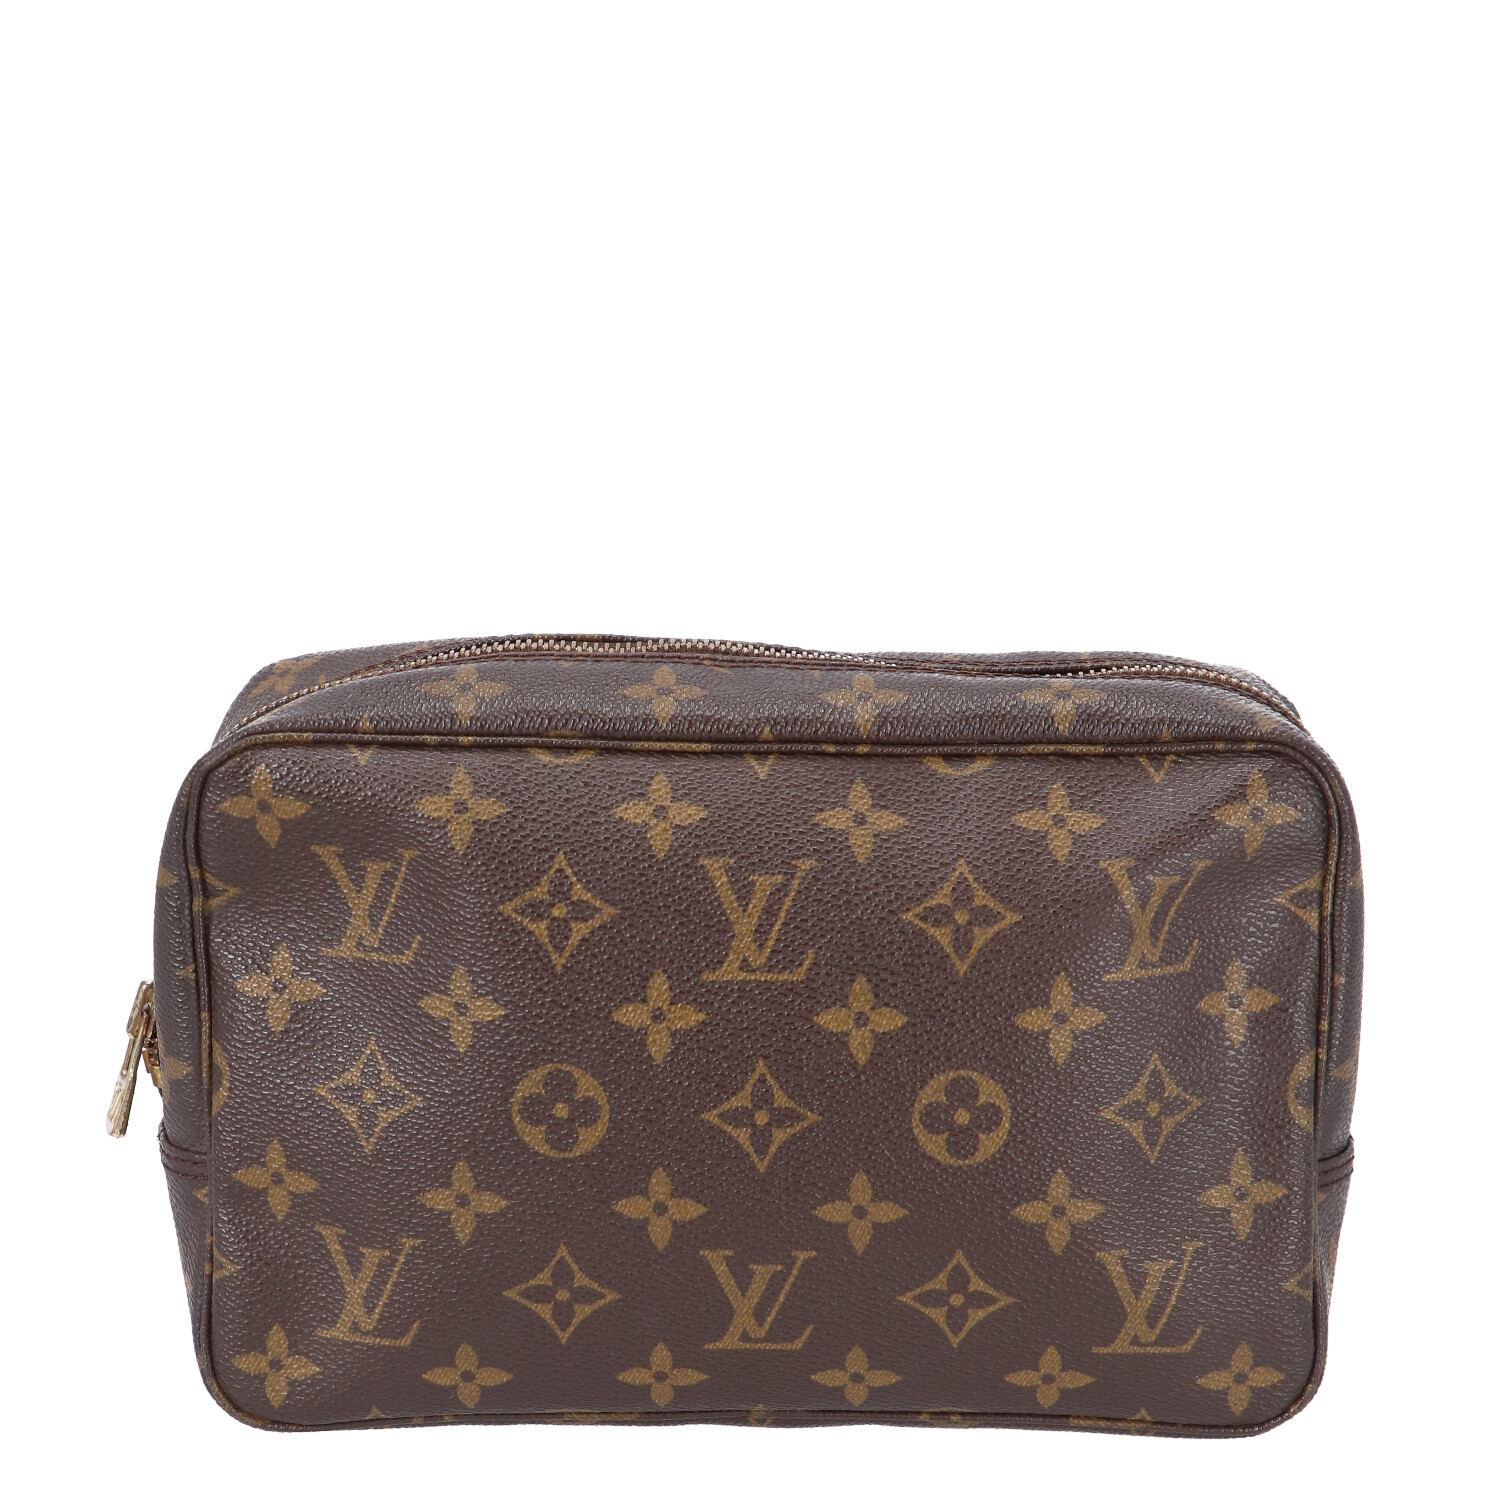 Monogram Canvas Trousse Toilette 23